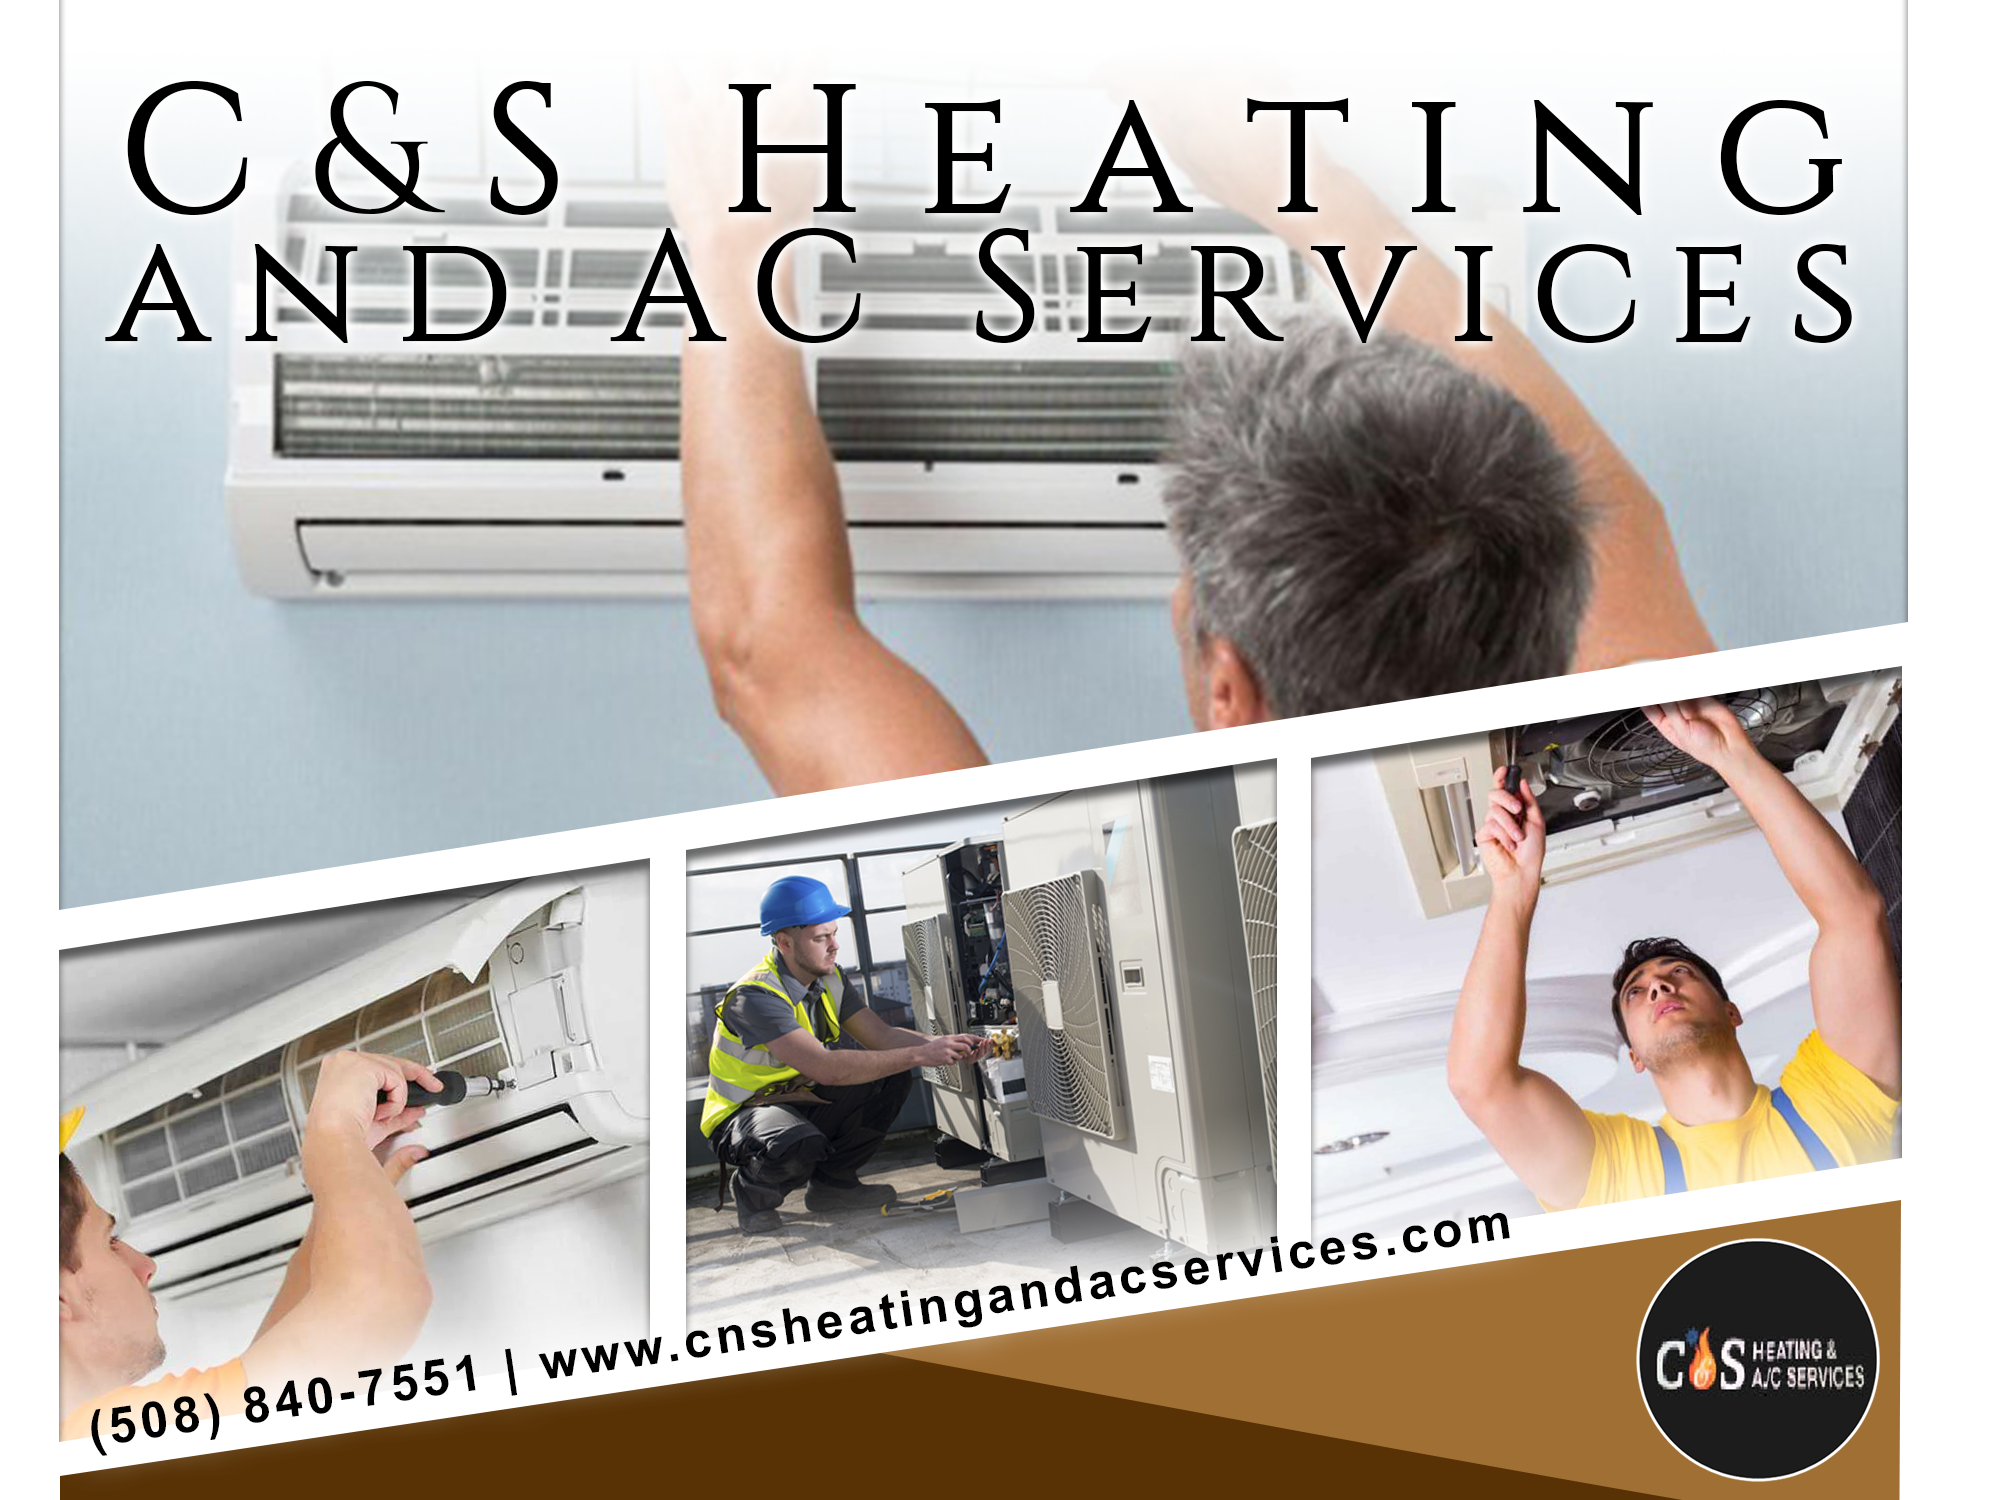 C S Heating And Ac Services Provides The Highest Quality Heating